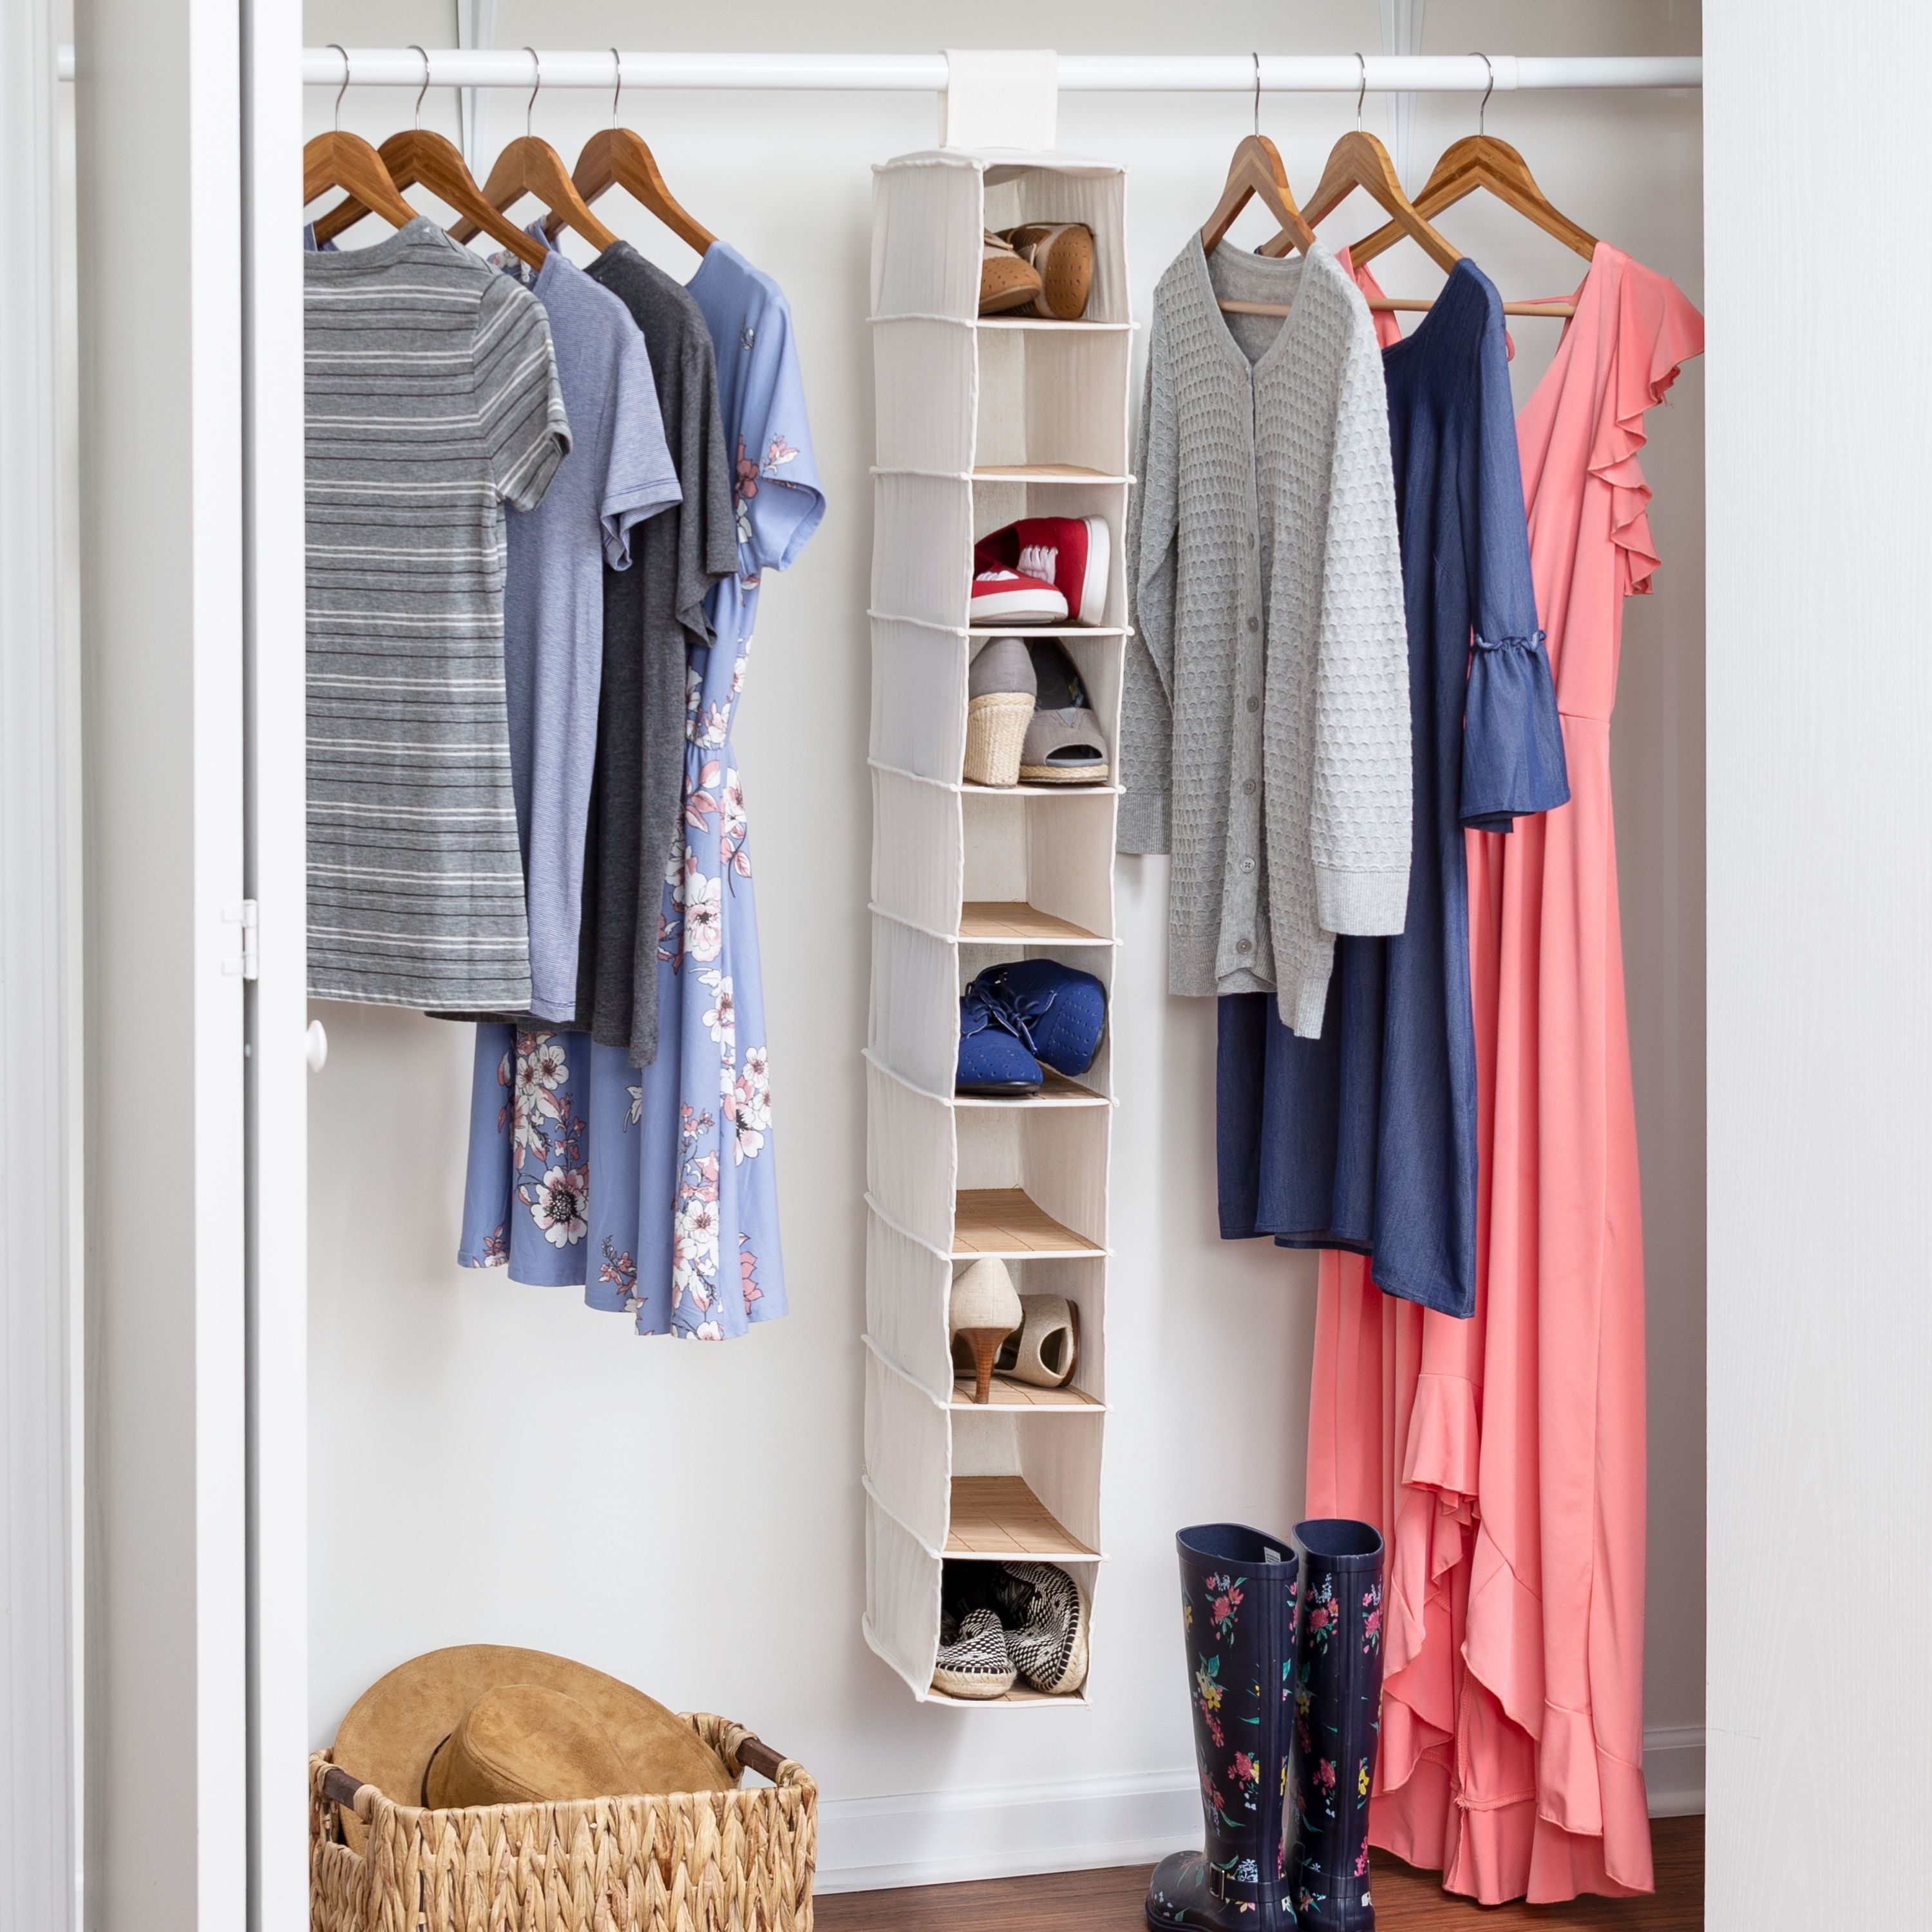 10-shelf hanging shoe organizer in a closet with shoes inside